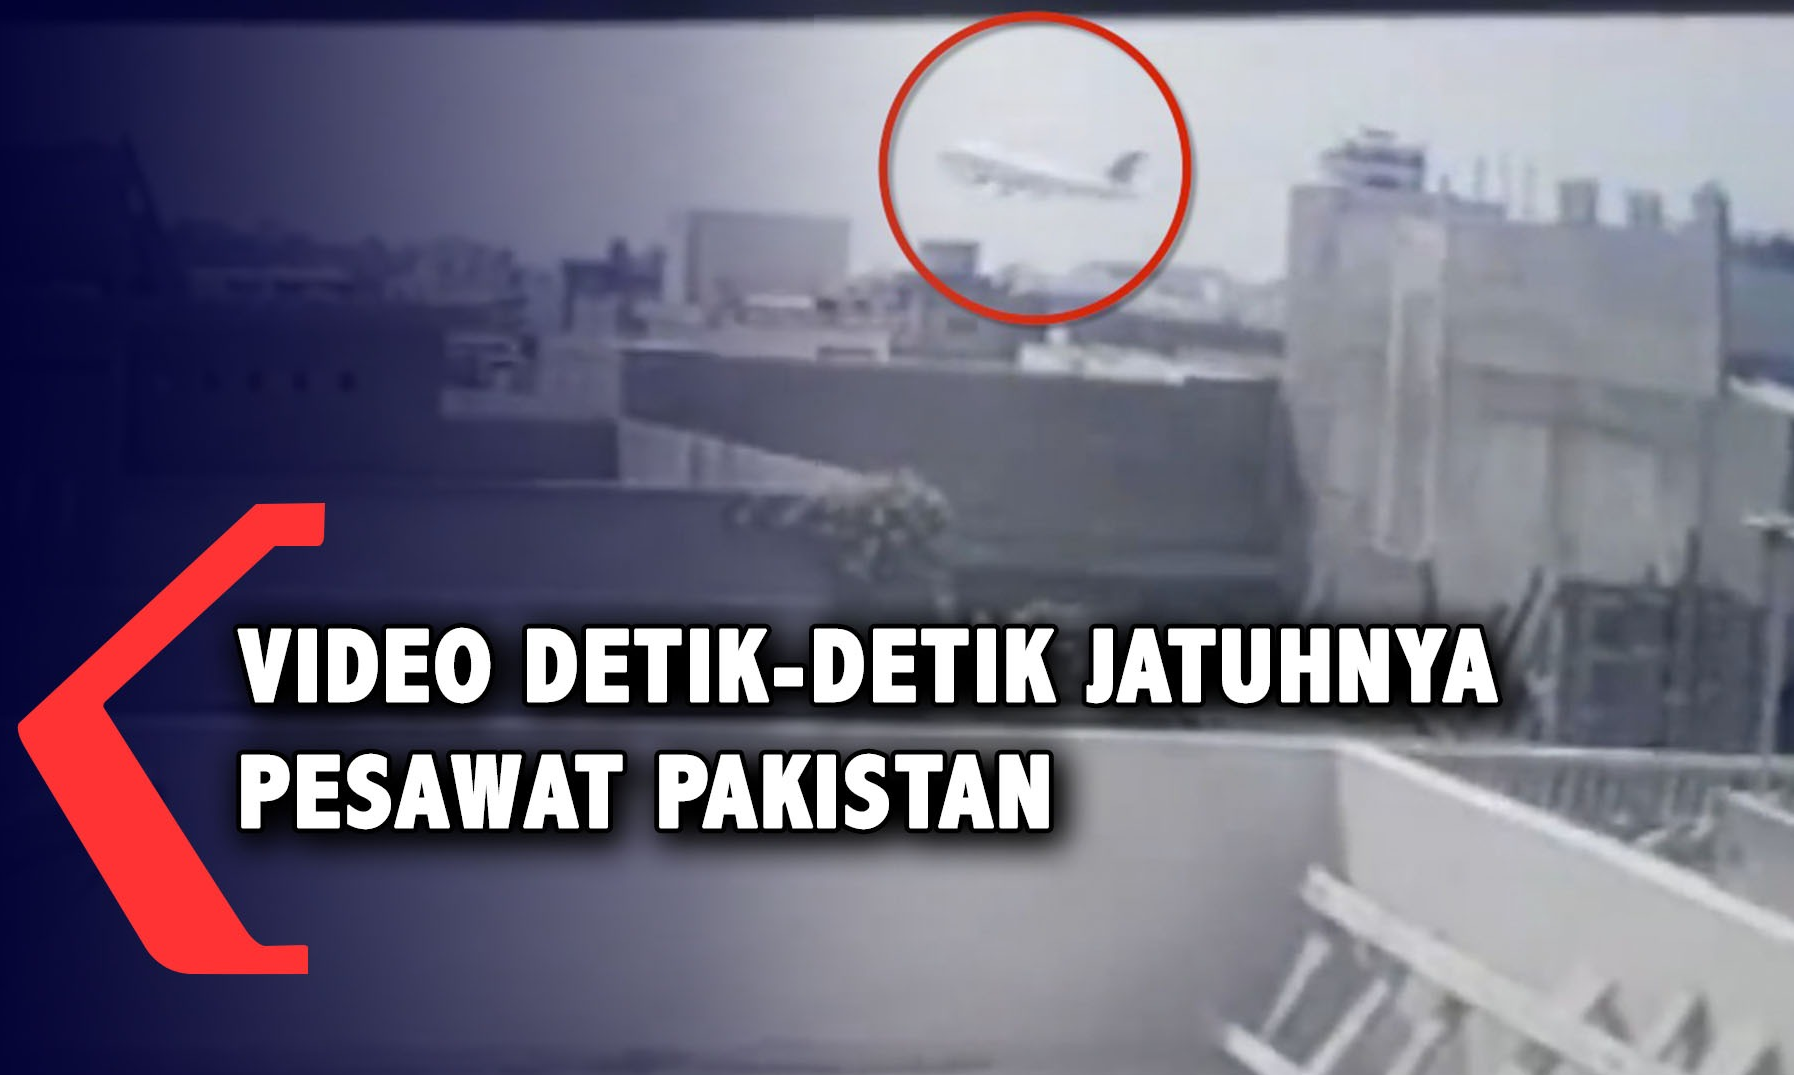 Video Detik-Detik Jatuhnya Pesawat Pakistan - Kompas TV